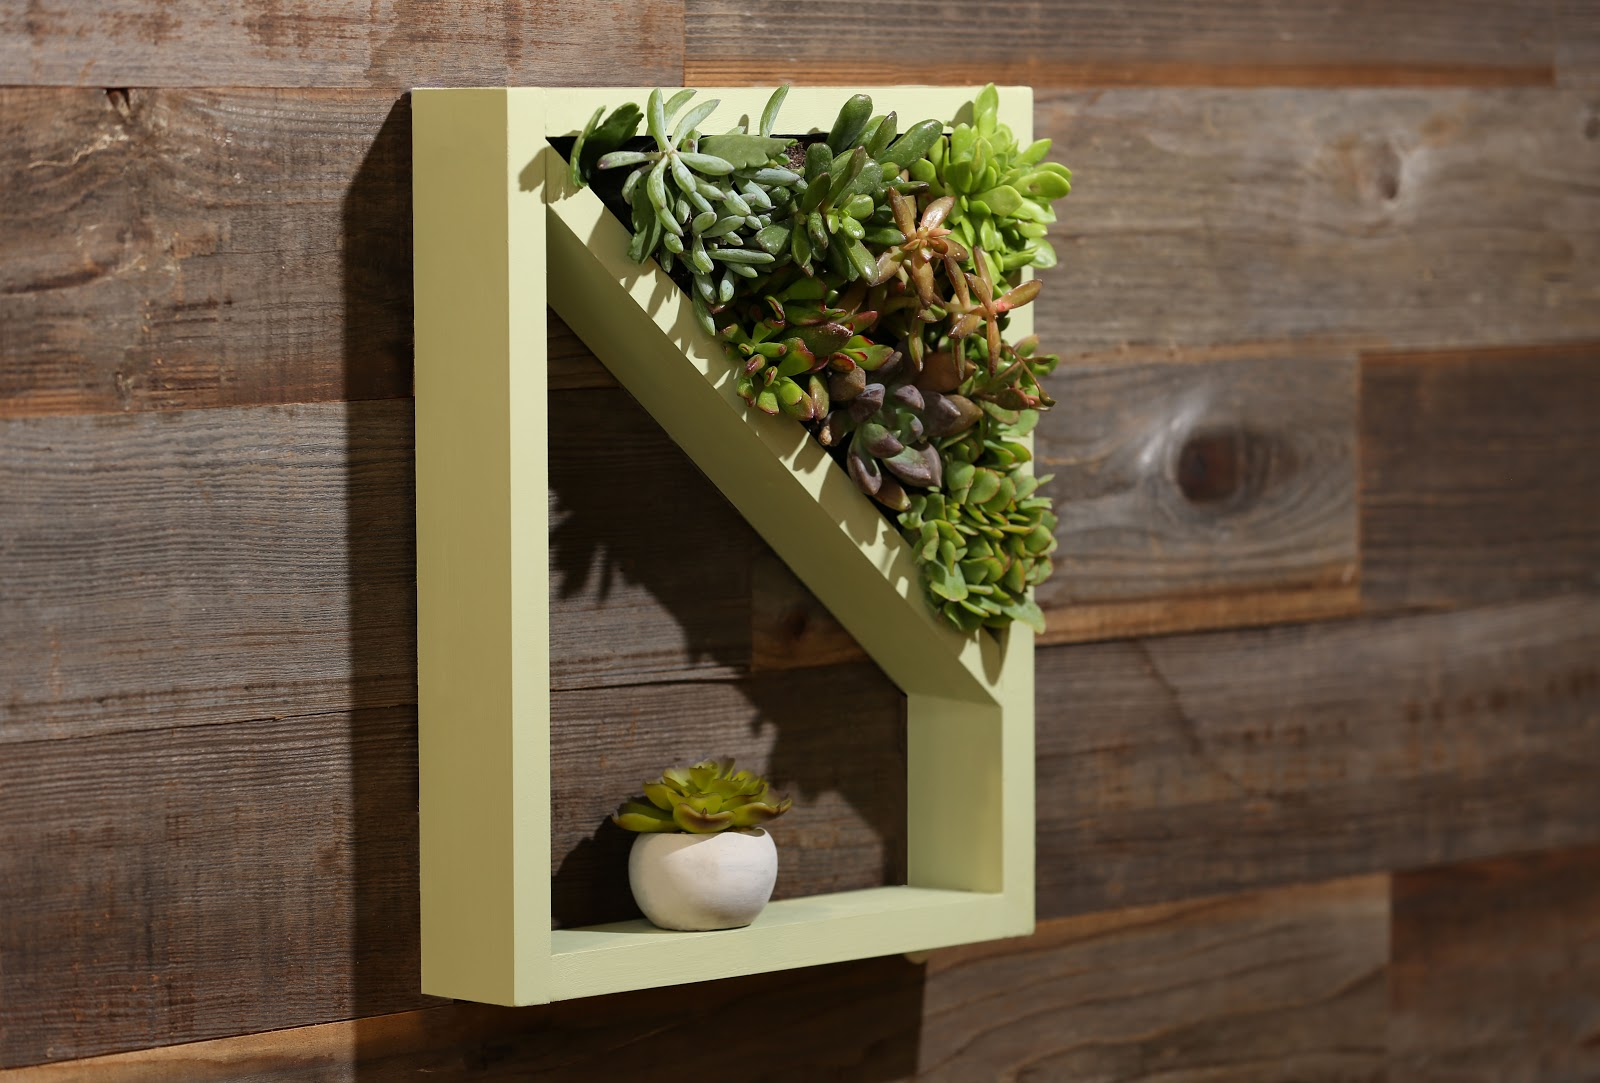 Hero shot of DIY planter with succulents against a wooden wall.